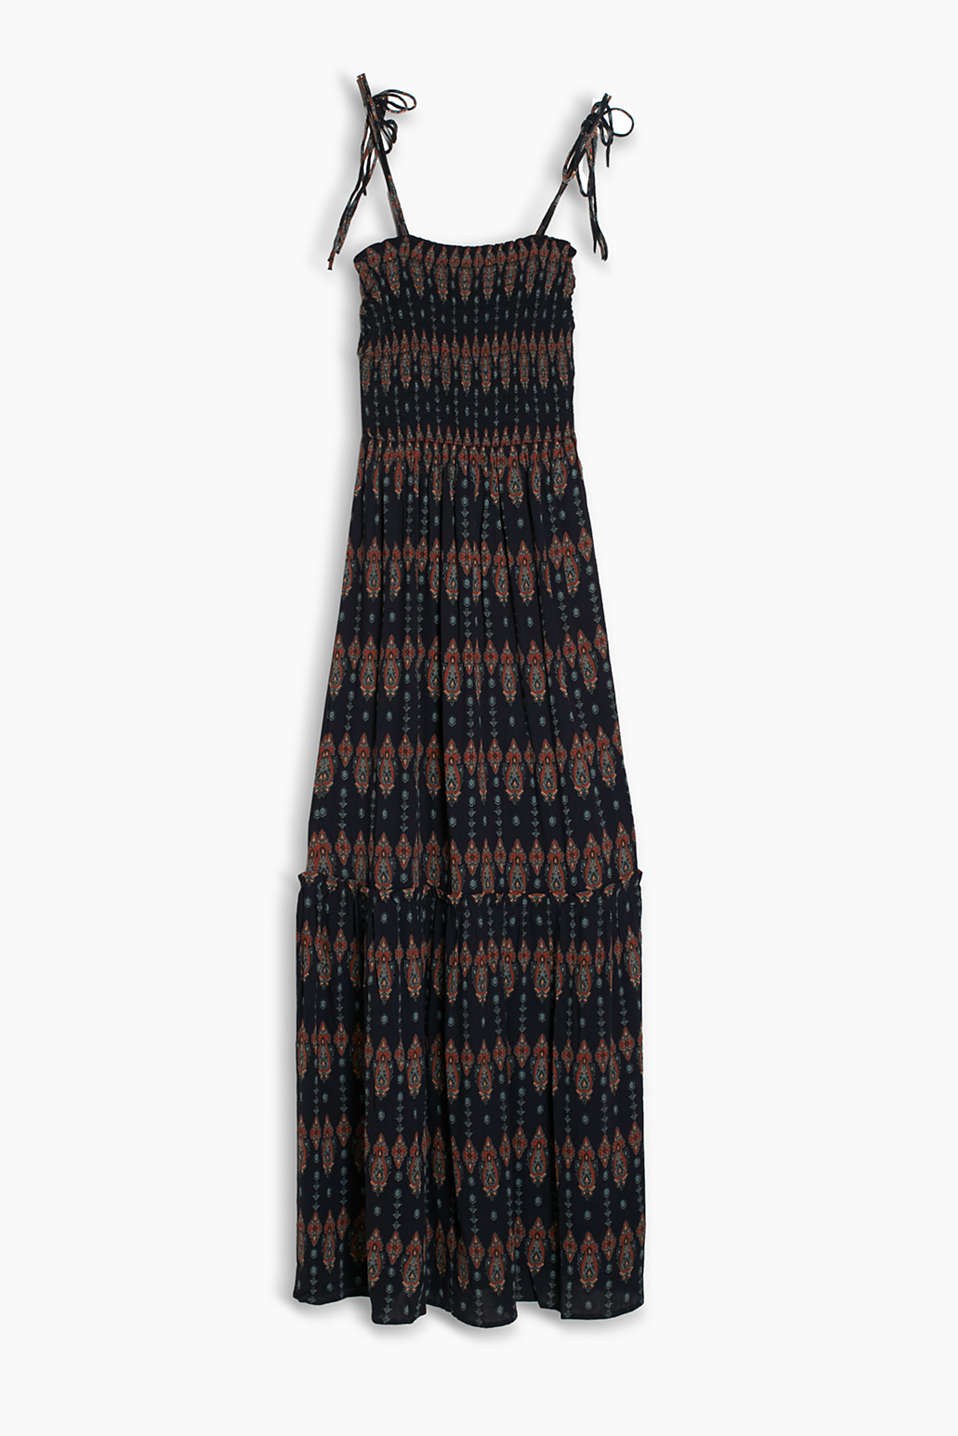 Smocked maxi dress in printed, crushed fabric with adjustable spaghetti straps